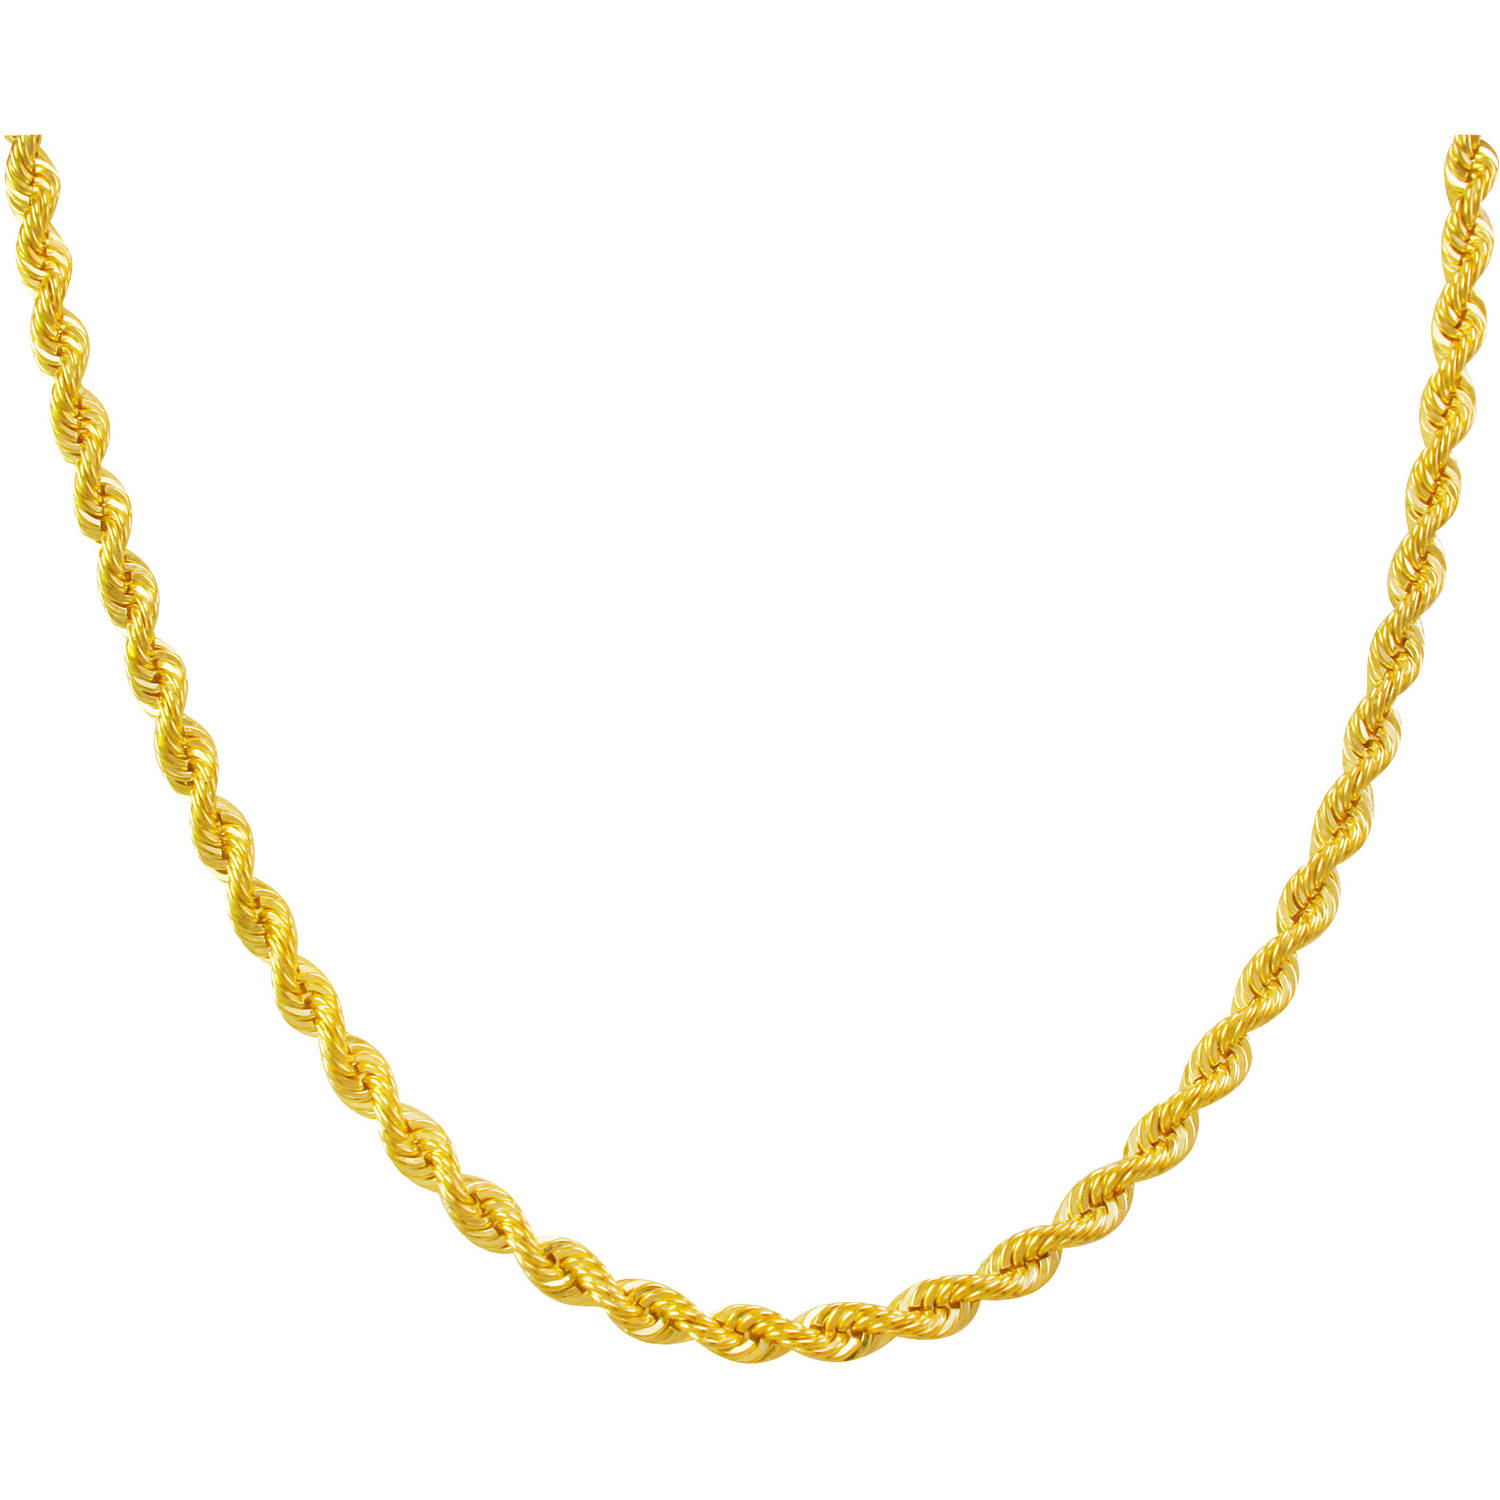 10kt Gold over Sterling Silver Rope Chain, 24